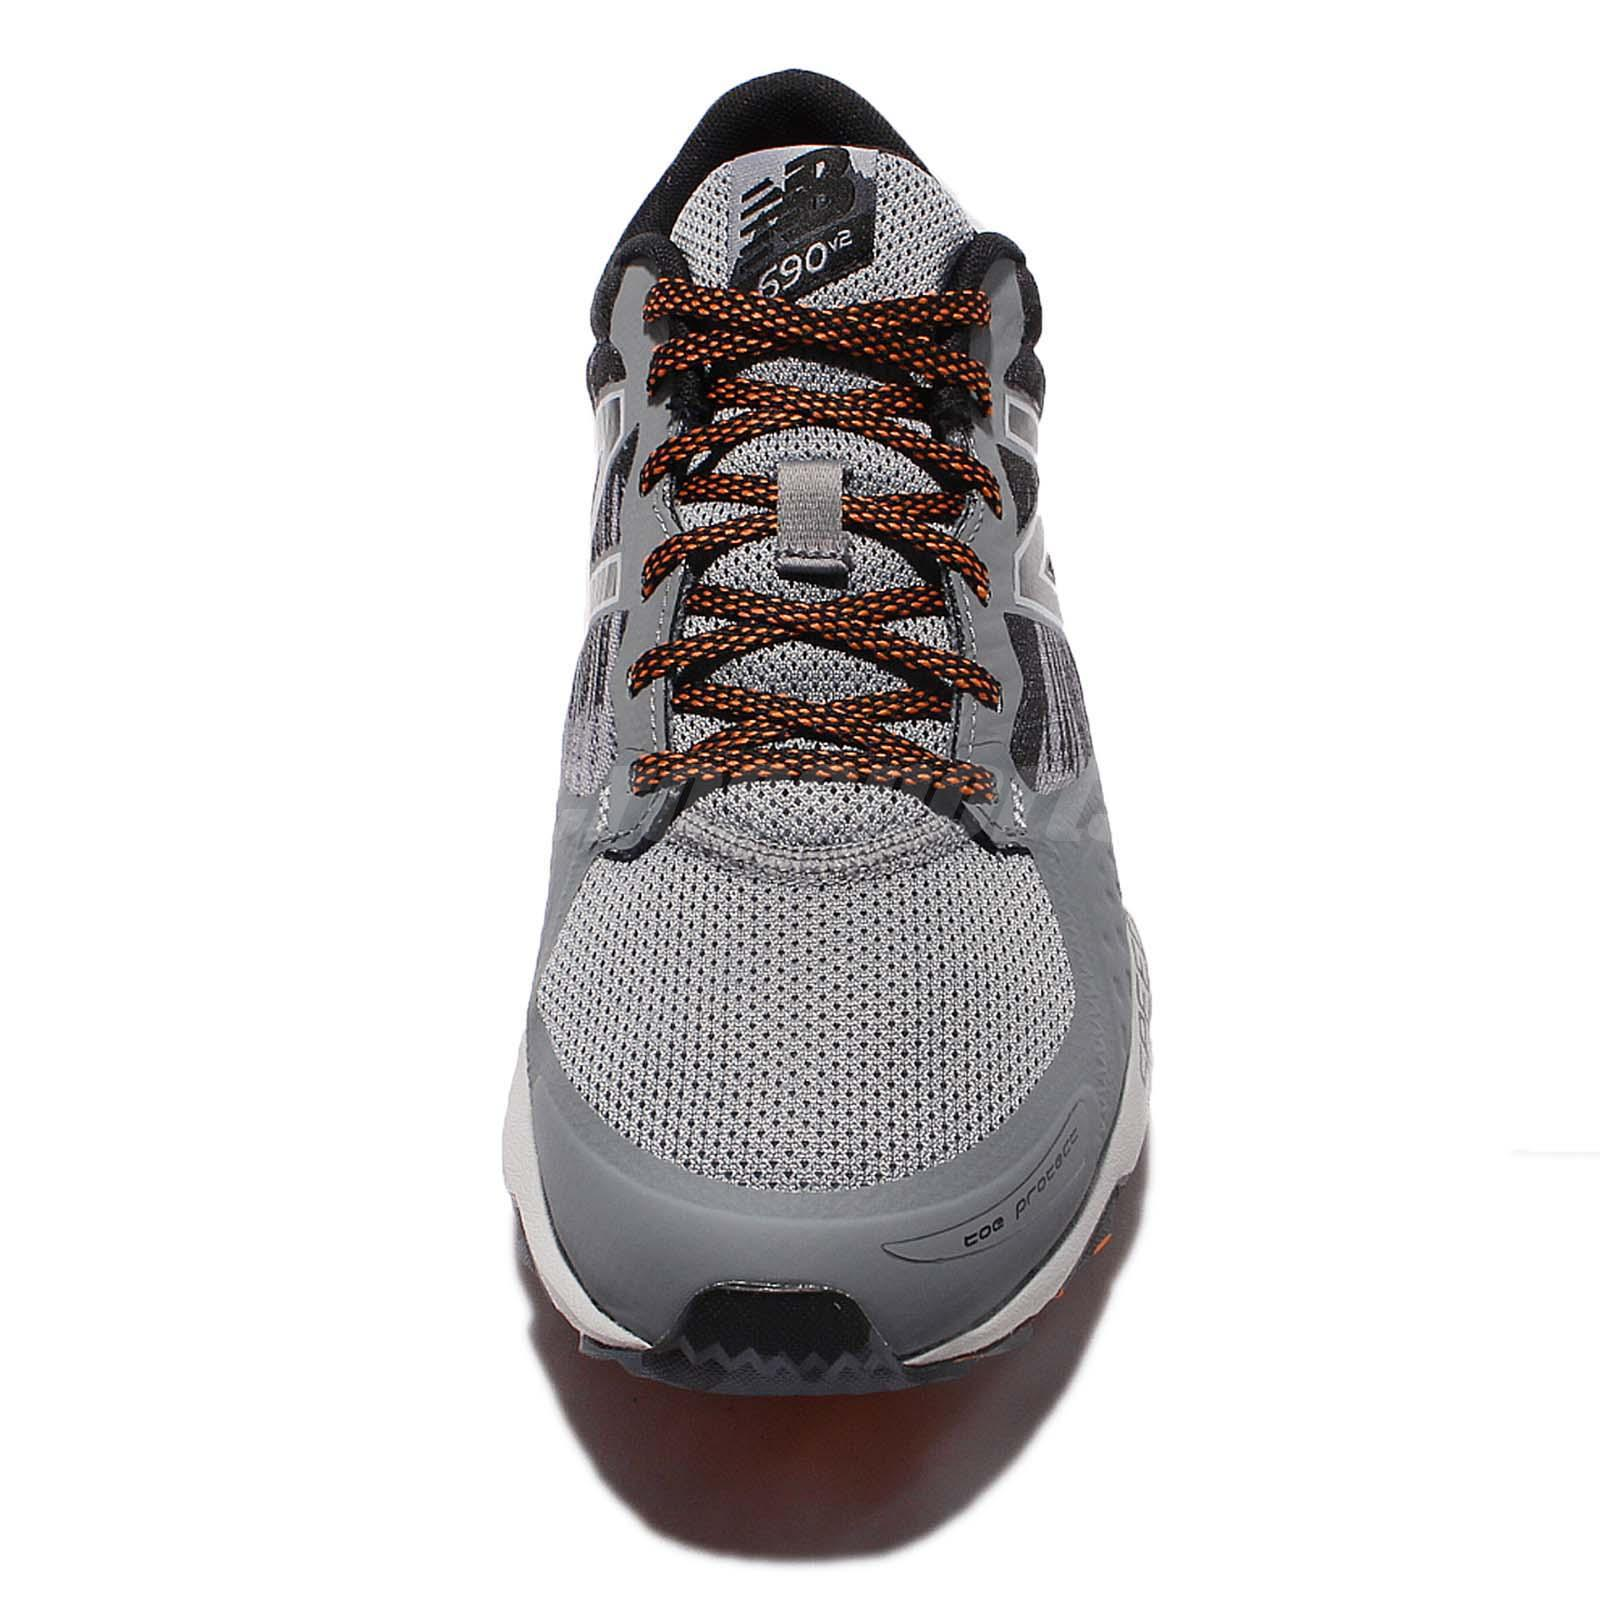 a967be12d6ef Buy new balance 690v2 review   OFF65% Discounted